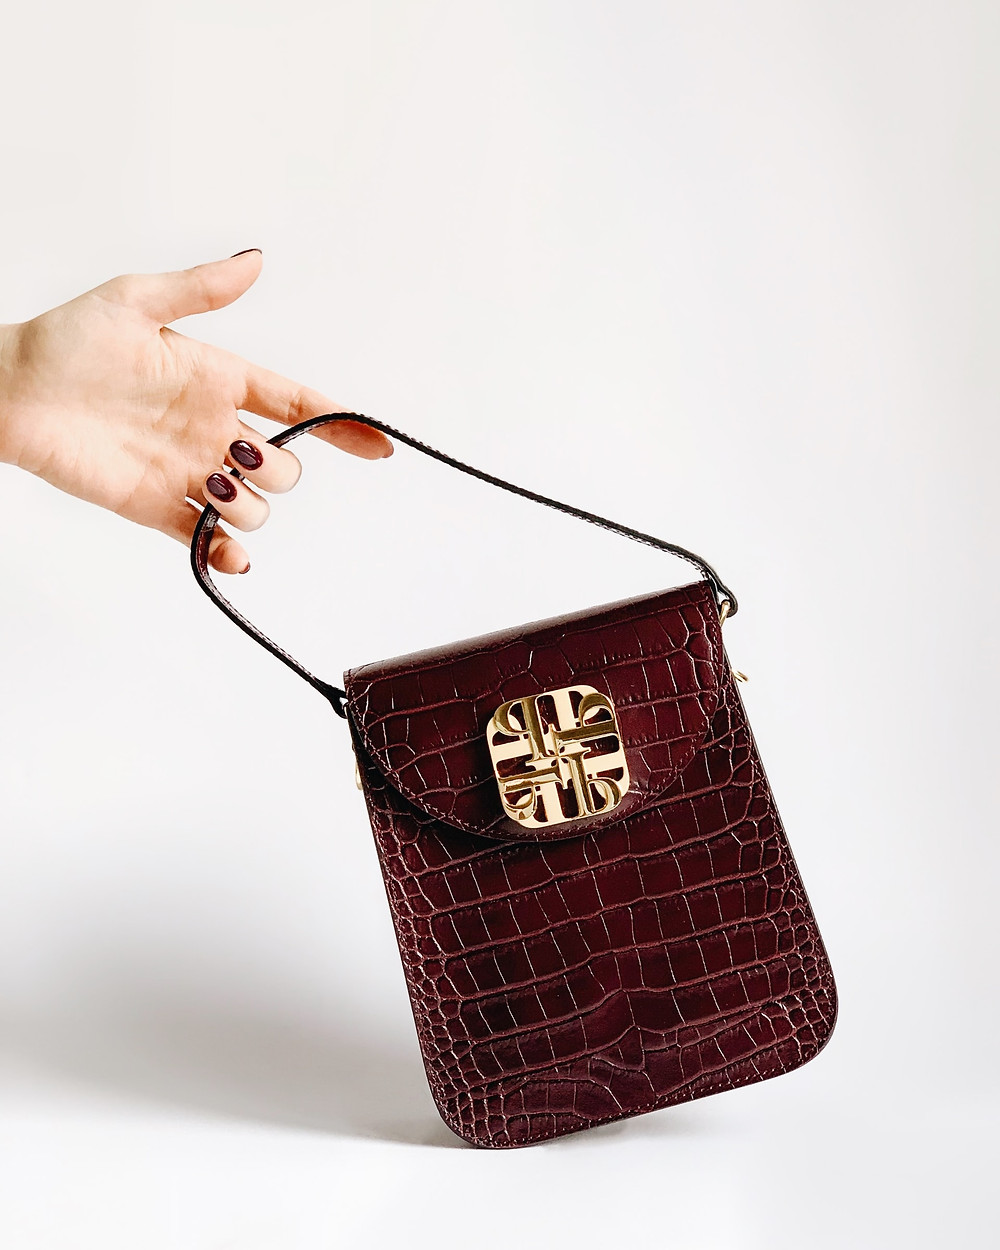 woman's hand with painted maroon fingernails holding a small, maroon crocodile-leather bag